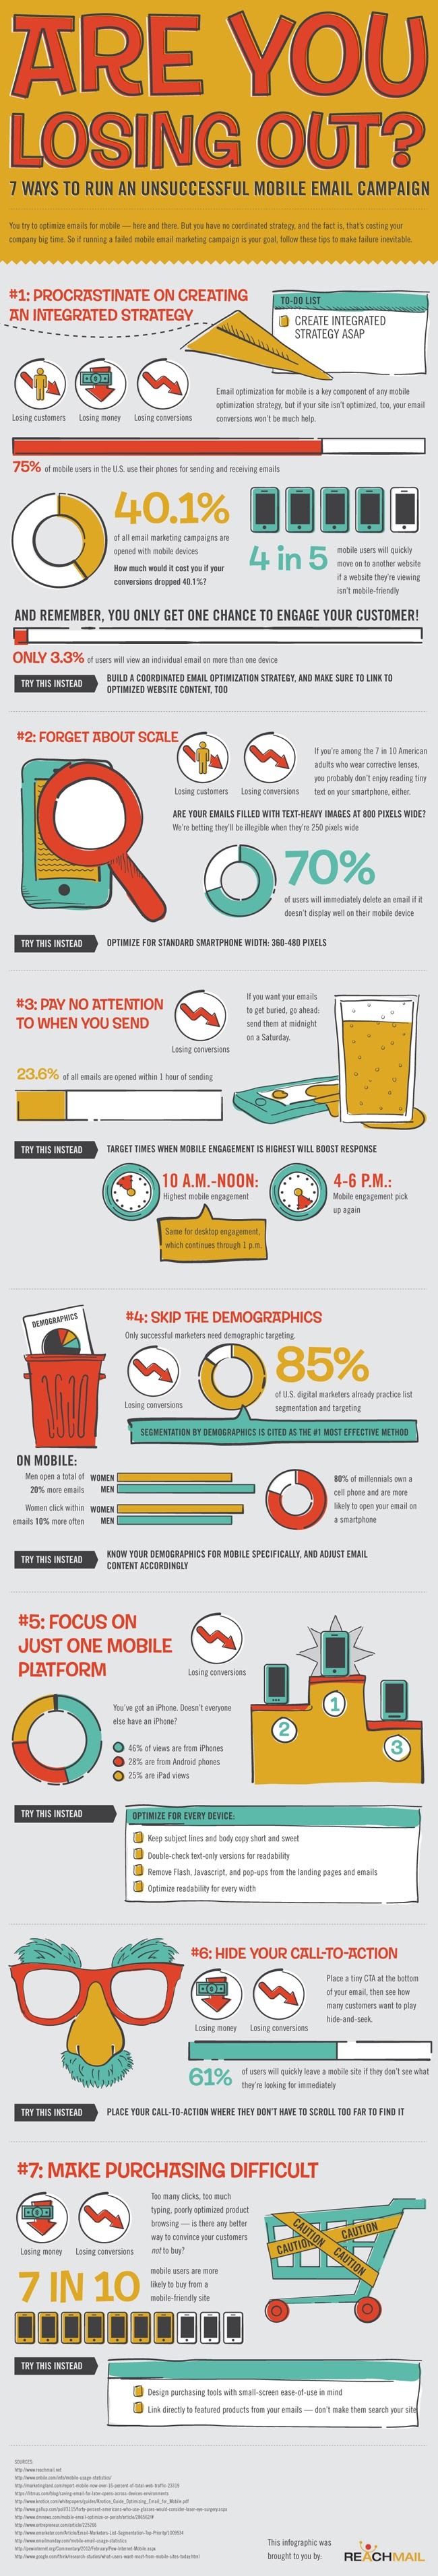 7 WAYS TO RUN AN UNSUCCESSFUL MOBILE EMAIL CAMPAIGN #INFOGRAPHIC